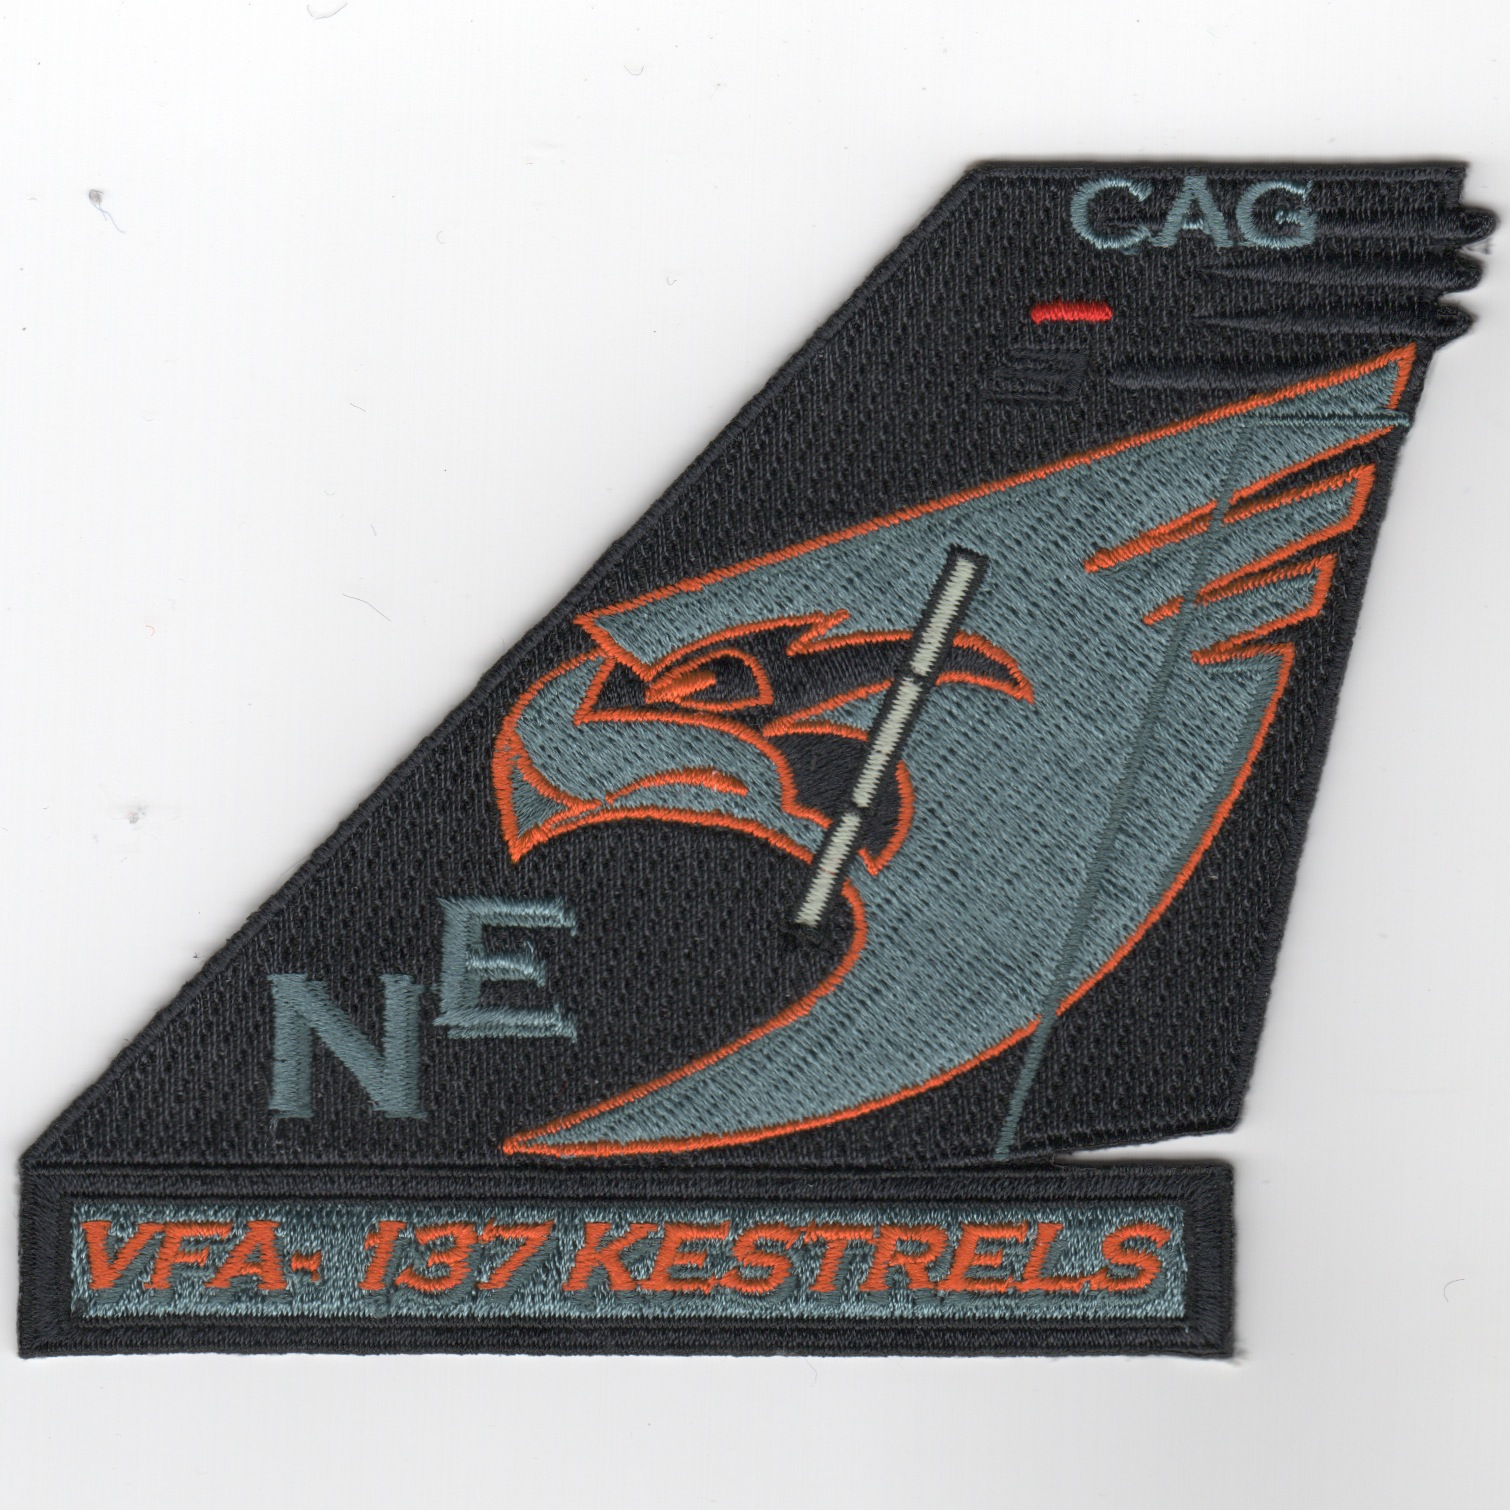 VFA-137 TailFin (CAG/Blue Form Lights)